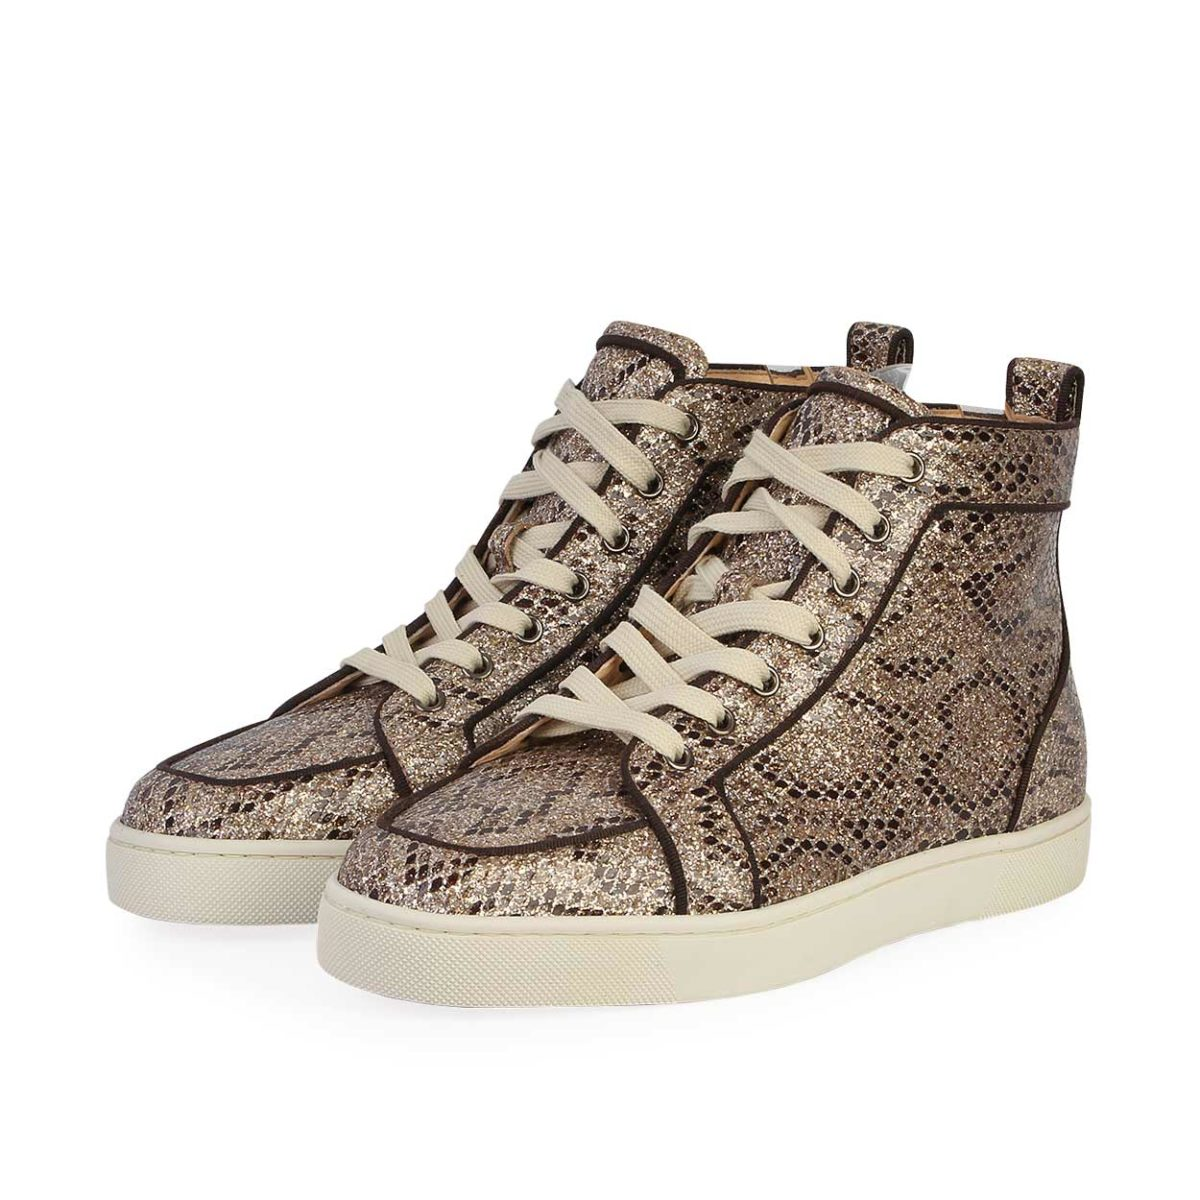 100% authentic caf58 1e617 CHRISTIAN LOUBOUTIN Python Rantus Orlato High Top Sneakers Gold - S: 40  (6.5)